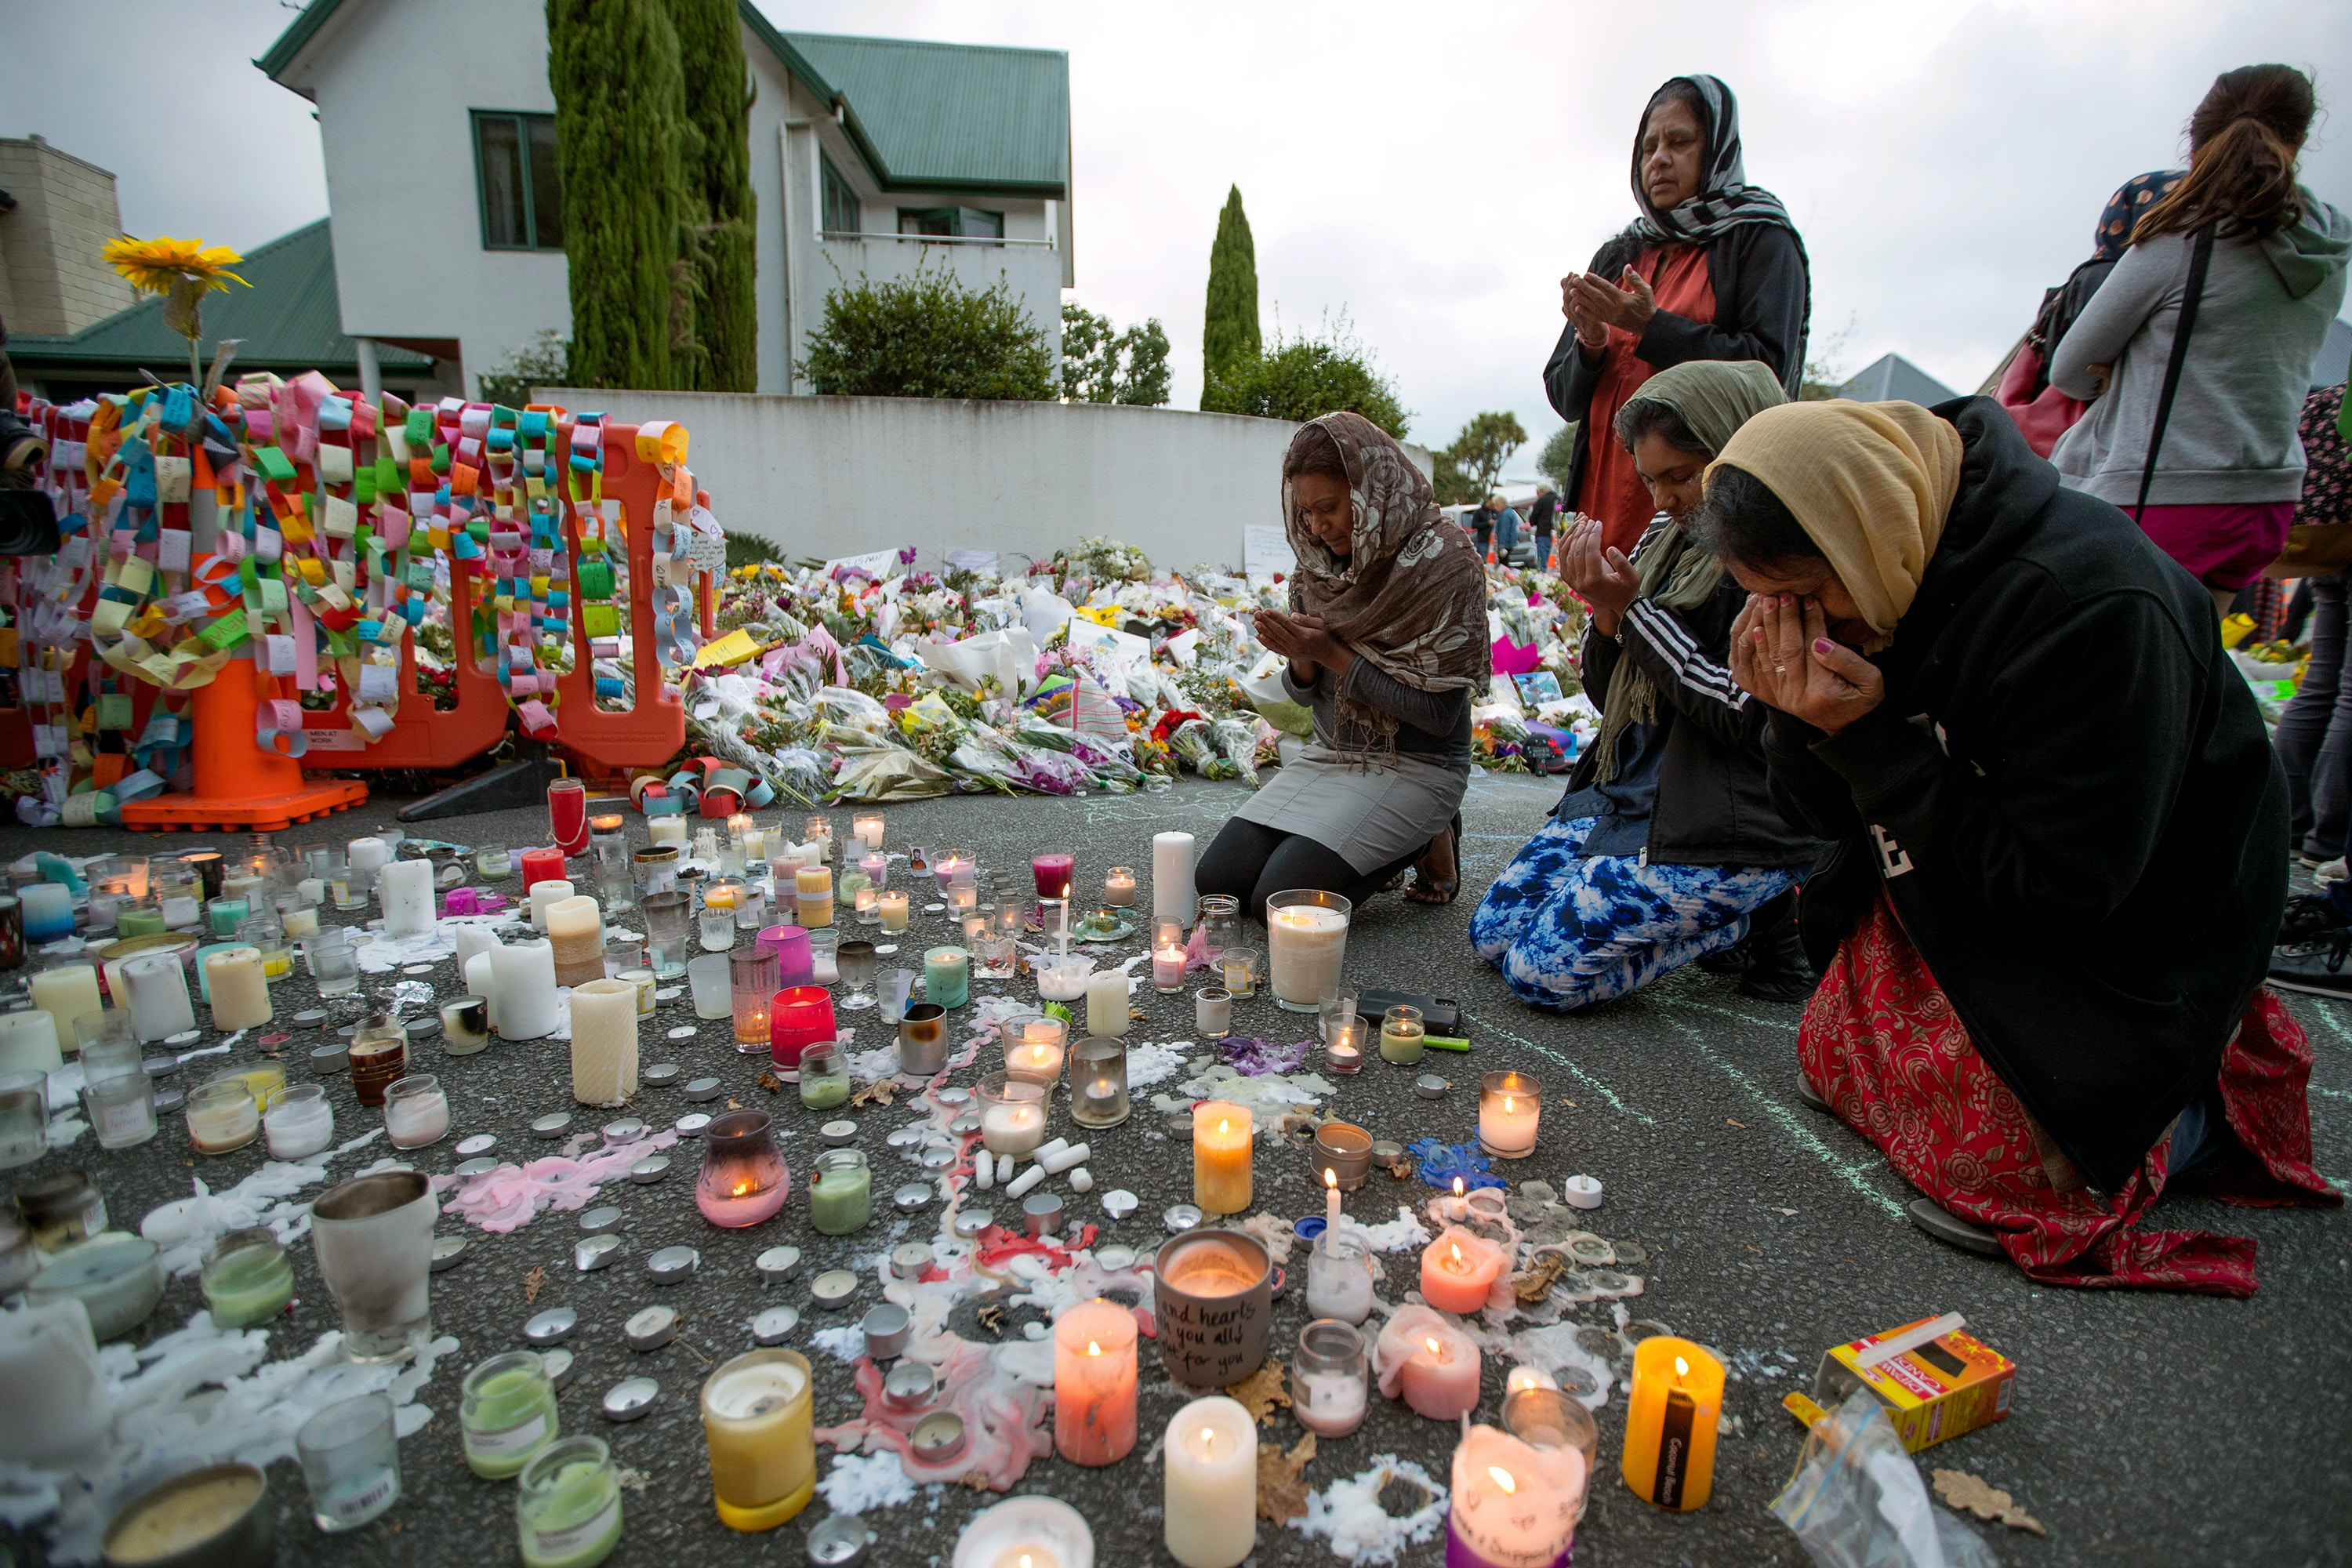 People mourn at a makeshift memorial site near the Al Noor mosque in Christchurch, New Zealand, Tuesday, March 19, 2019. Streets near the hospital that had been closed for four days reopened to traffic as relatives and friends of the victims of last week's mass shootings continued to stream in from around the world. (AP Photo/Vincent Thian)